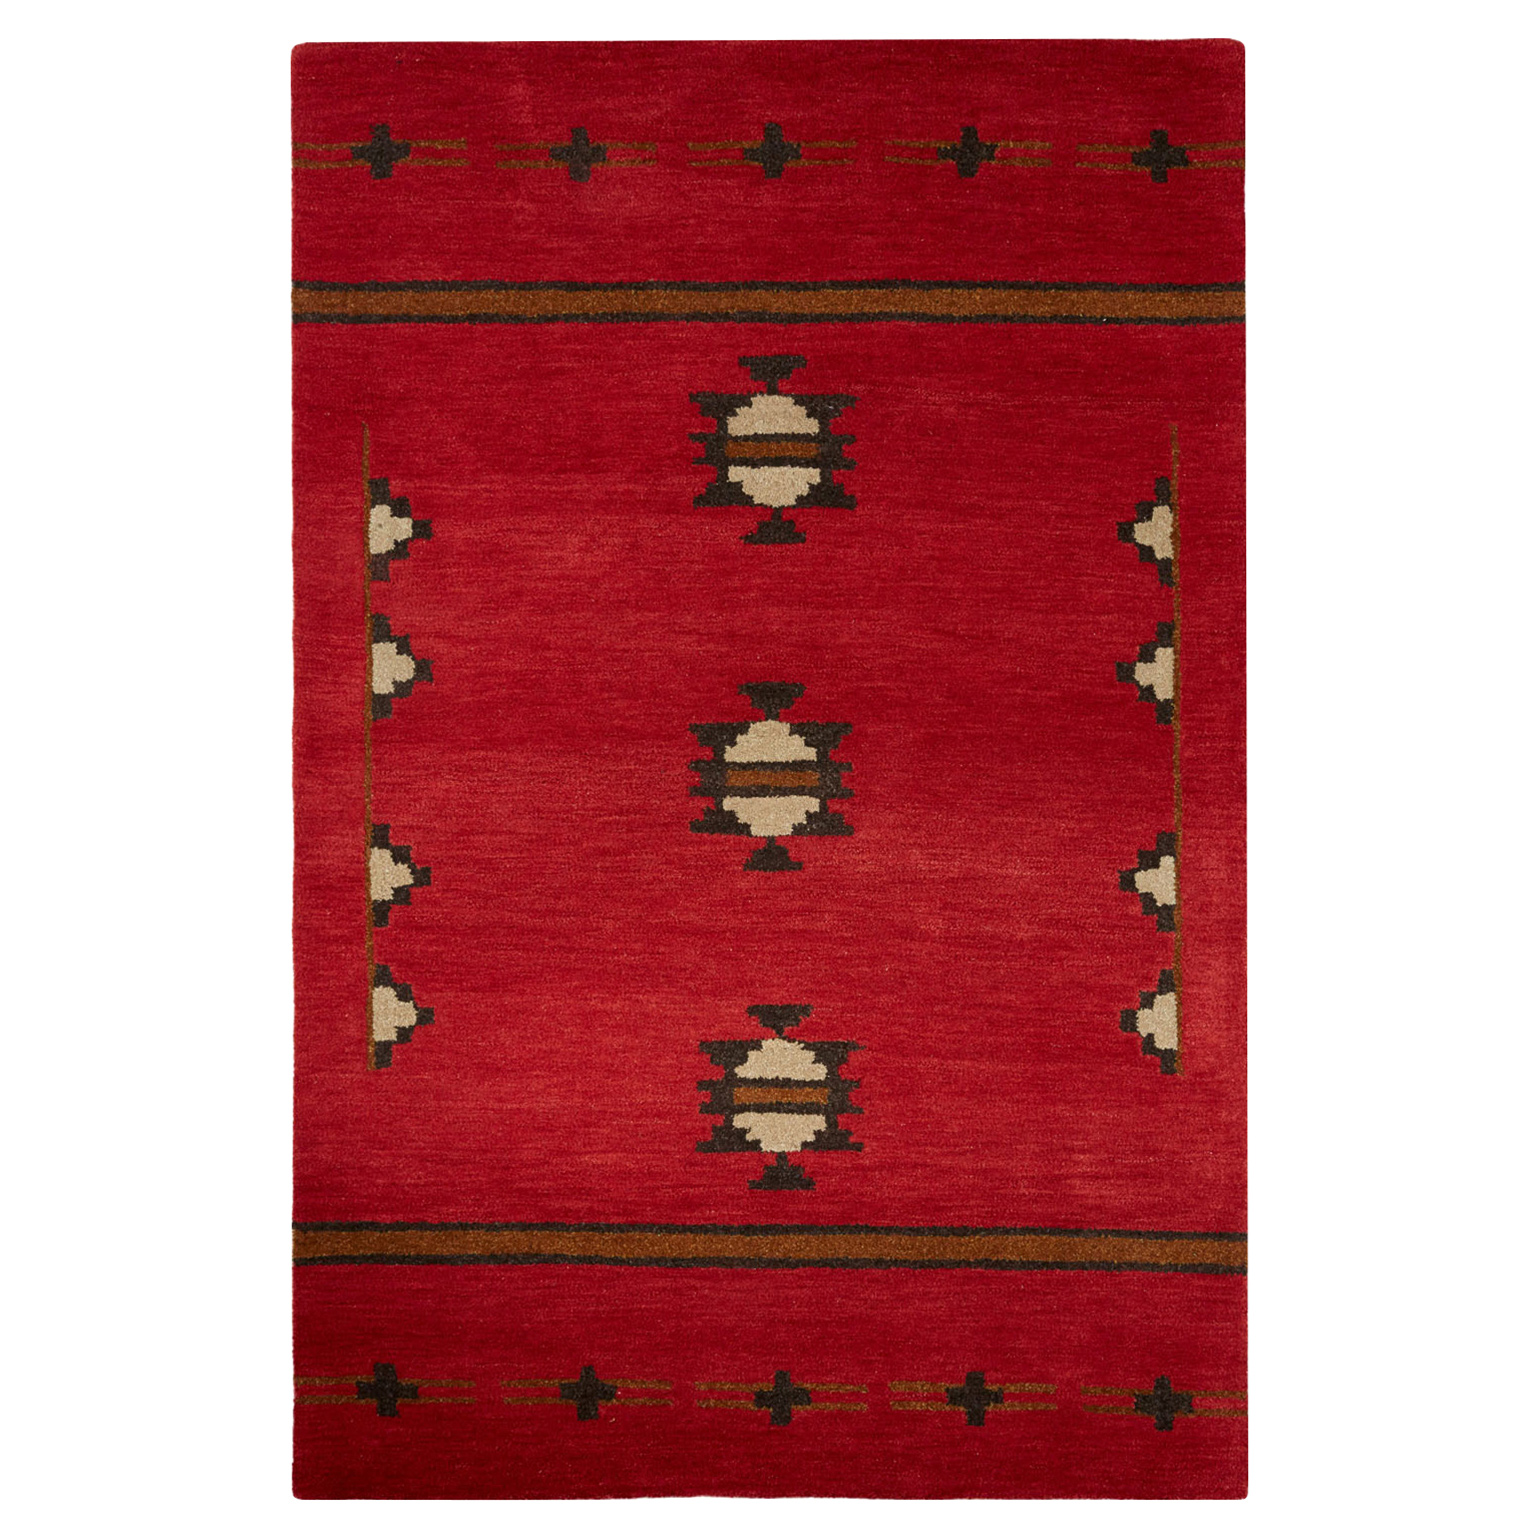 Otero Lodge Western Native Rustic Red Wool Rug - 8x10